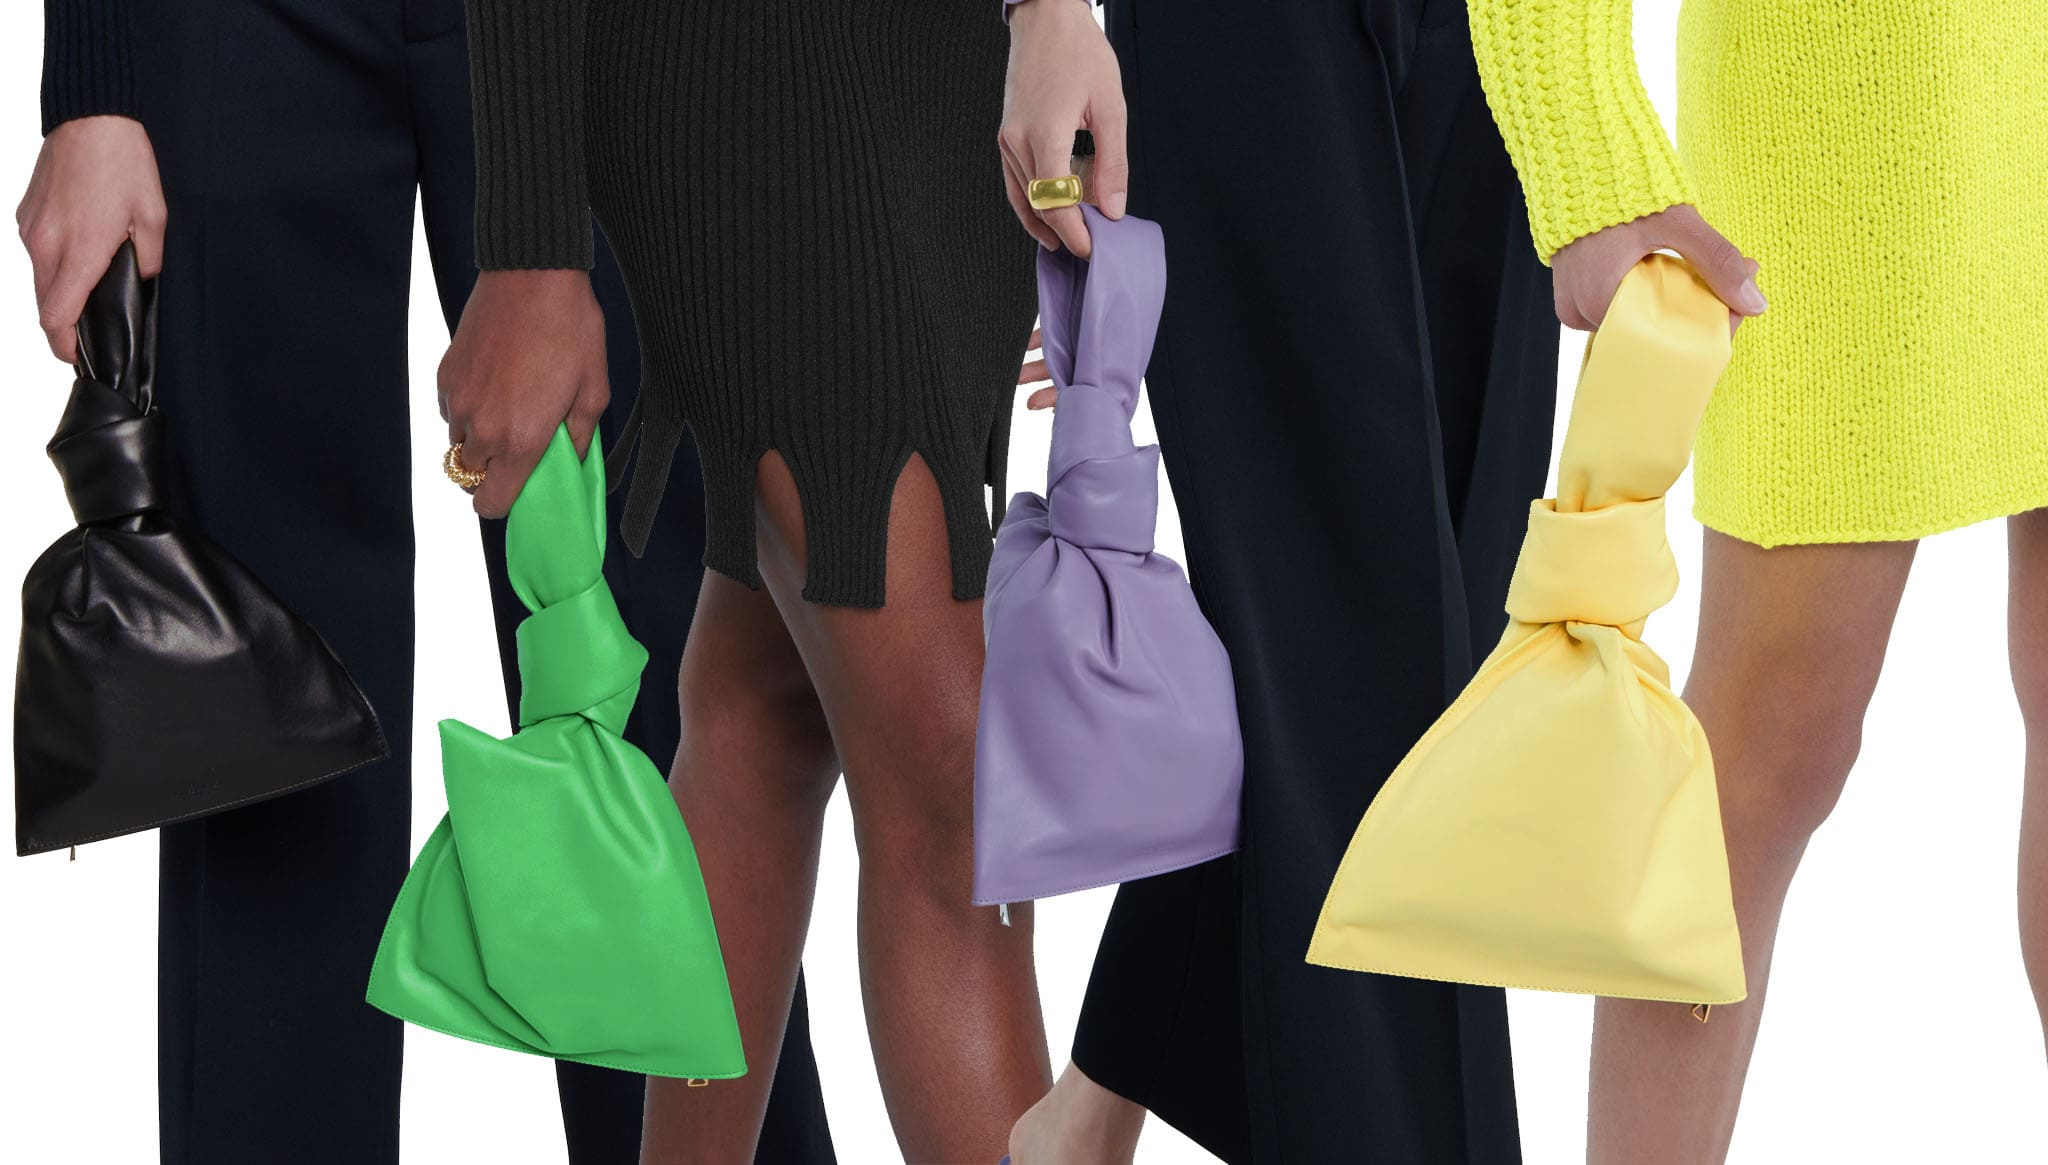 The Twist Mini is a slouchy tote bag that fits snugly in the palm